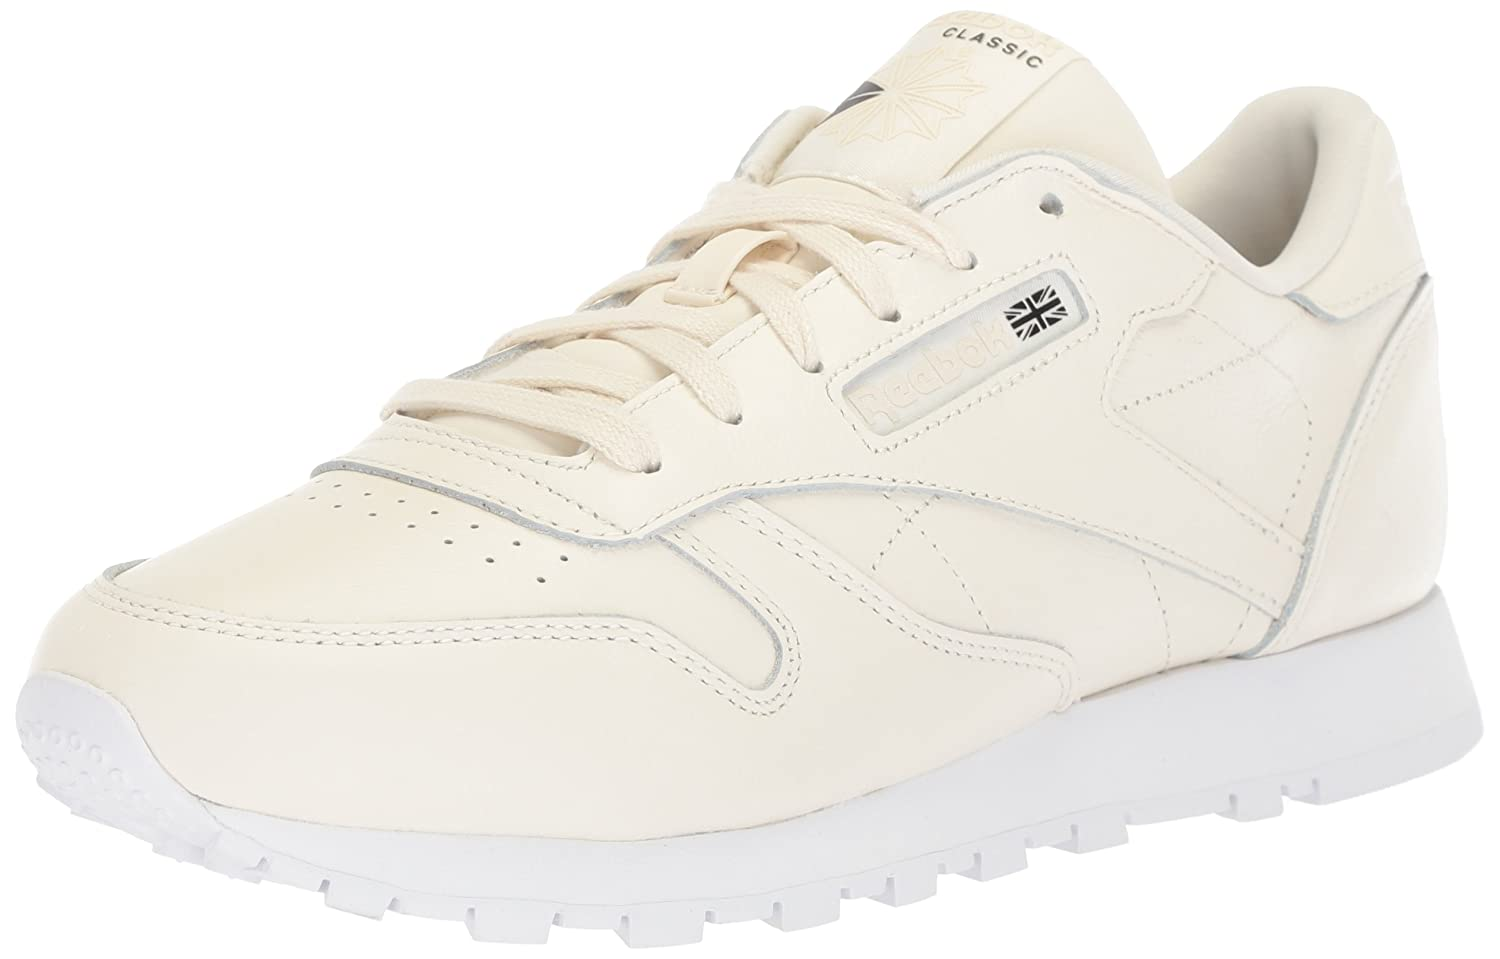 Reebok Women's Cl Lthr X Face Walking Shoe B072JNN4LN 11 B(M) US|Classic White/White/Black